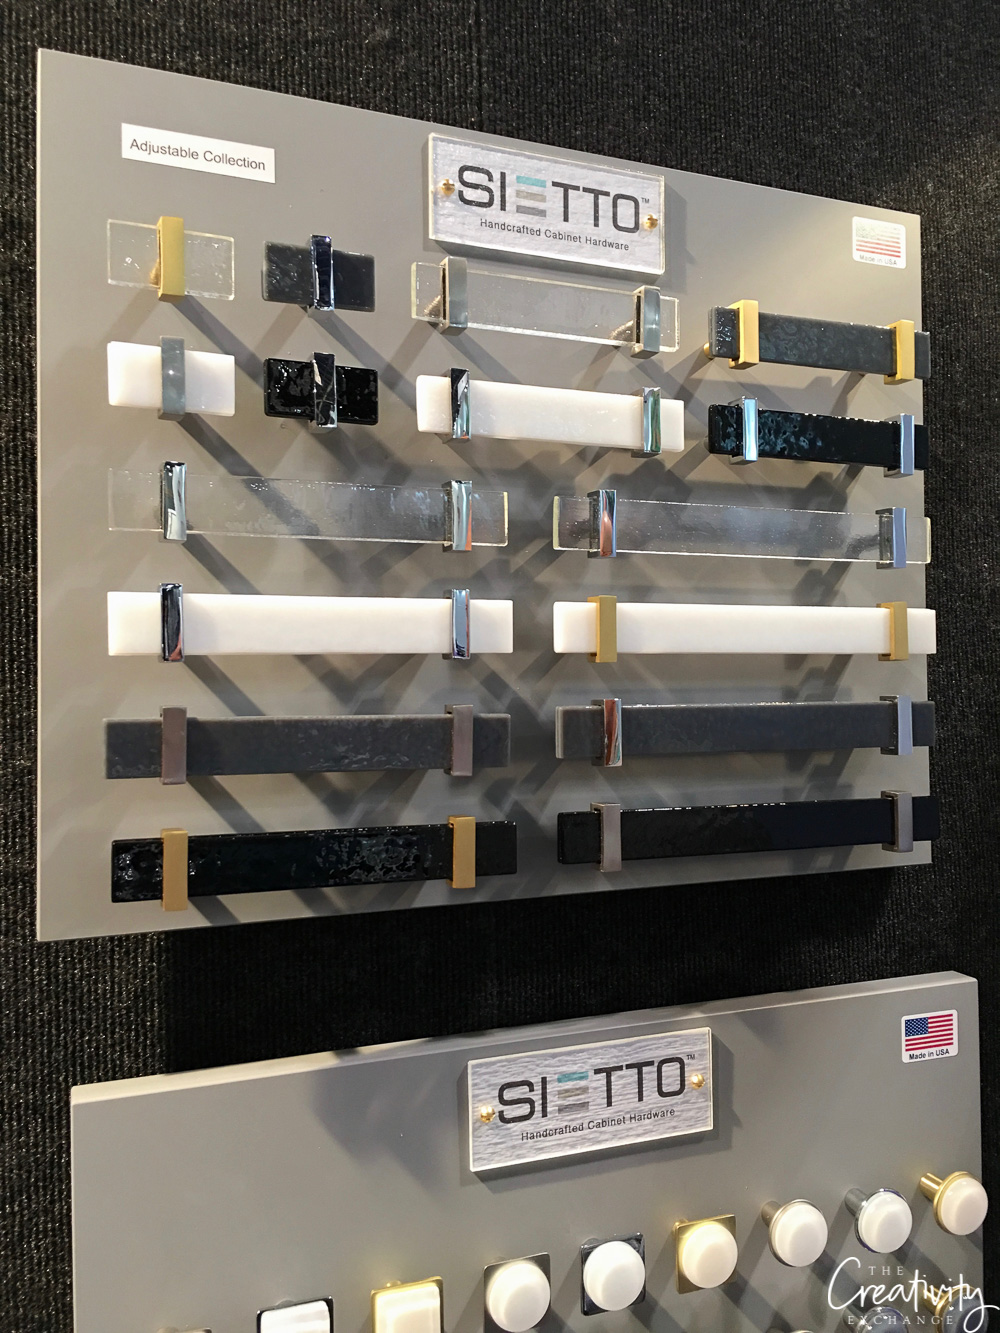 Sietto stone and glass drawer pulls and hardare